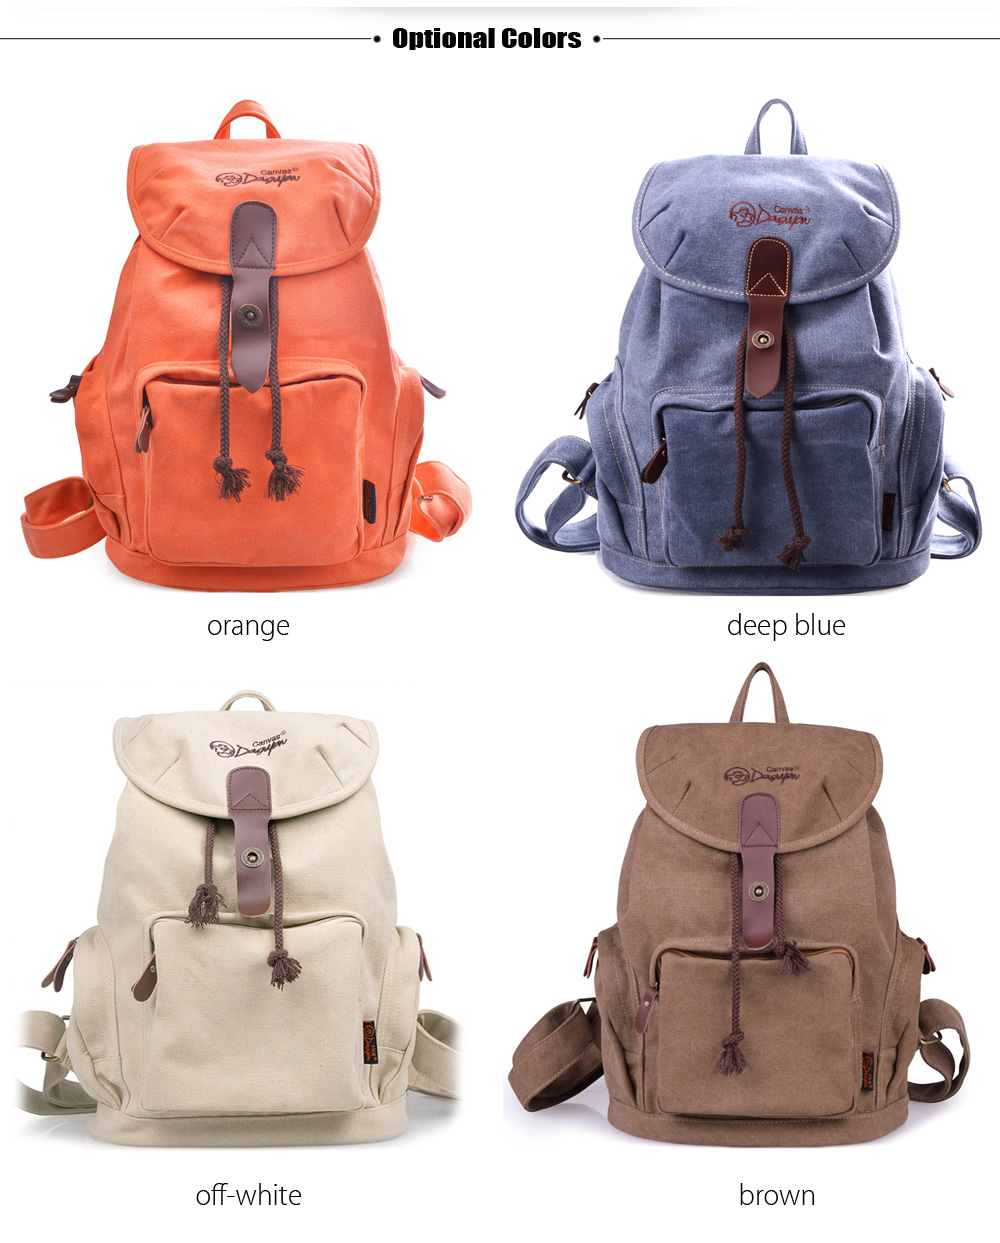 Douguyan 13 inch Solid Color Canvas Laptop Backpack Leisure Travel Bag